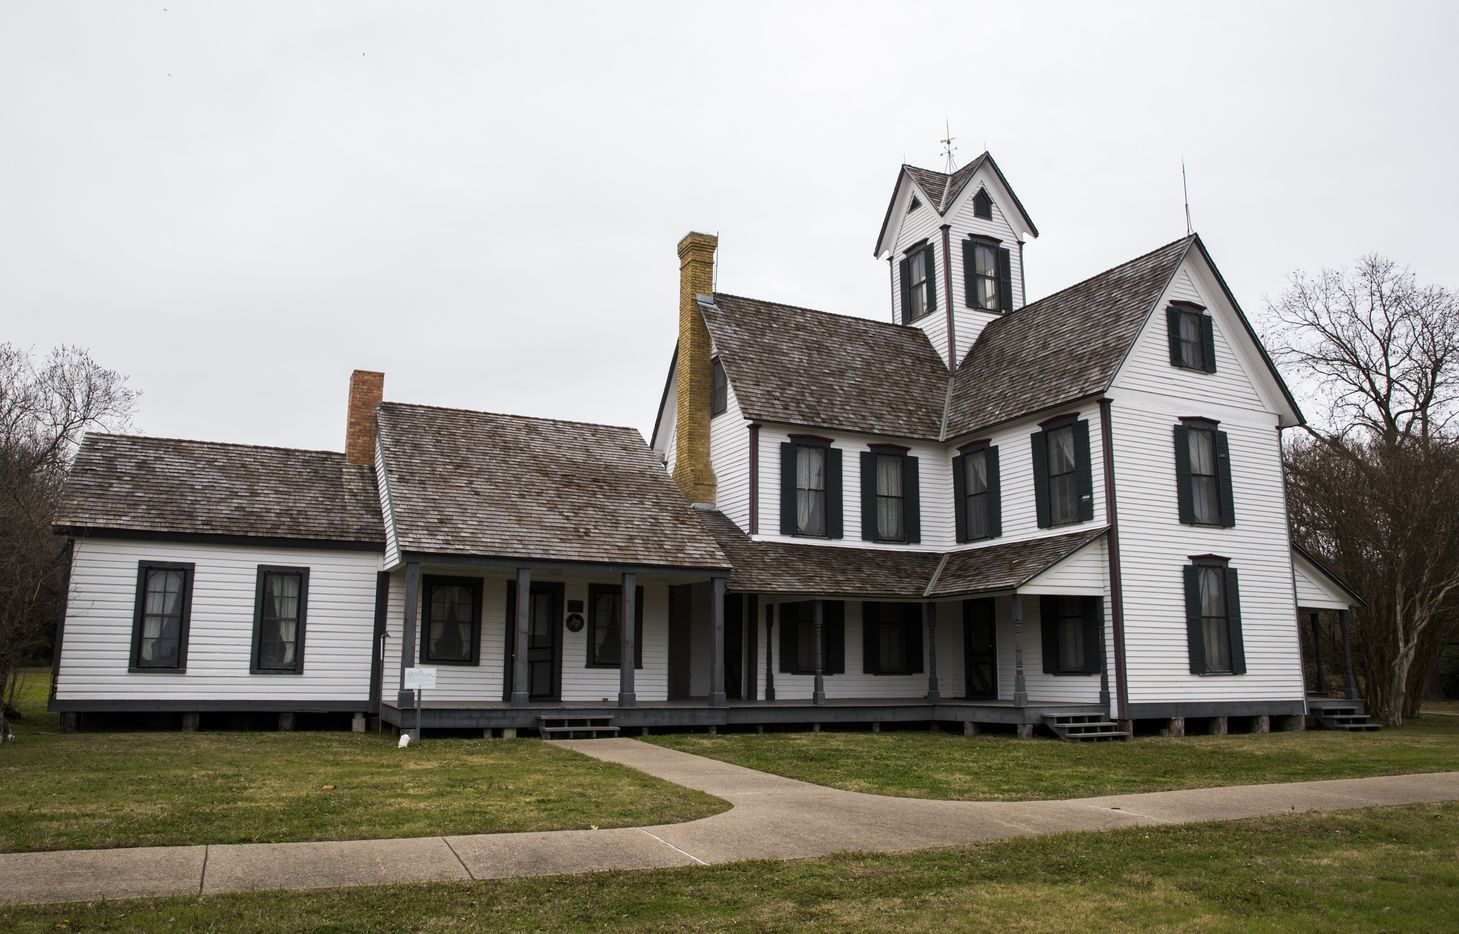 """Toyia Pointer, city historic preservation manager and executive director of the nonprofit Historic Mesquite, hopes to find ways to get more North Texans to the Lawrence House, which is among what she calls the """"hidden gems"""" of the Opal Lawrence Historical Park."""